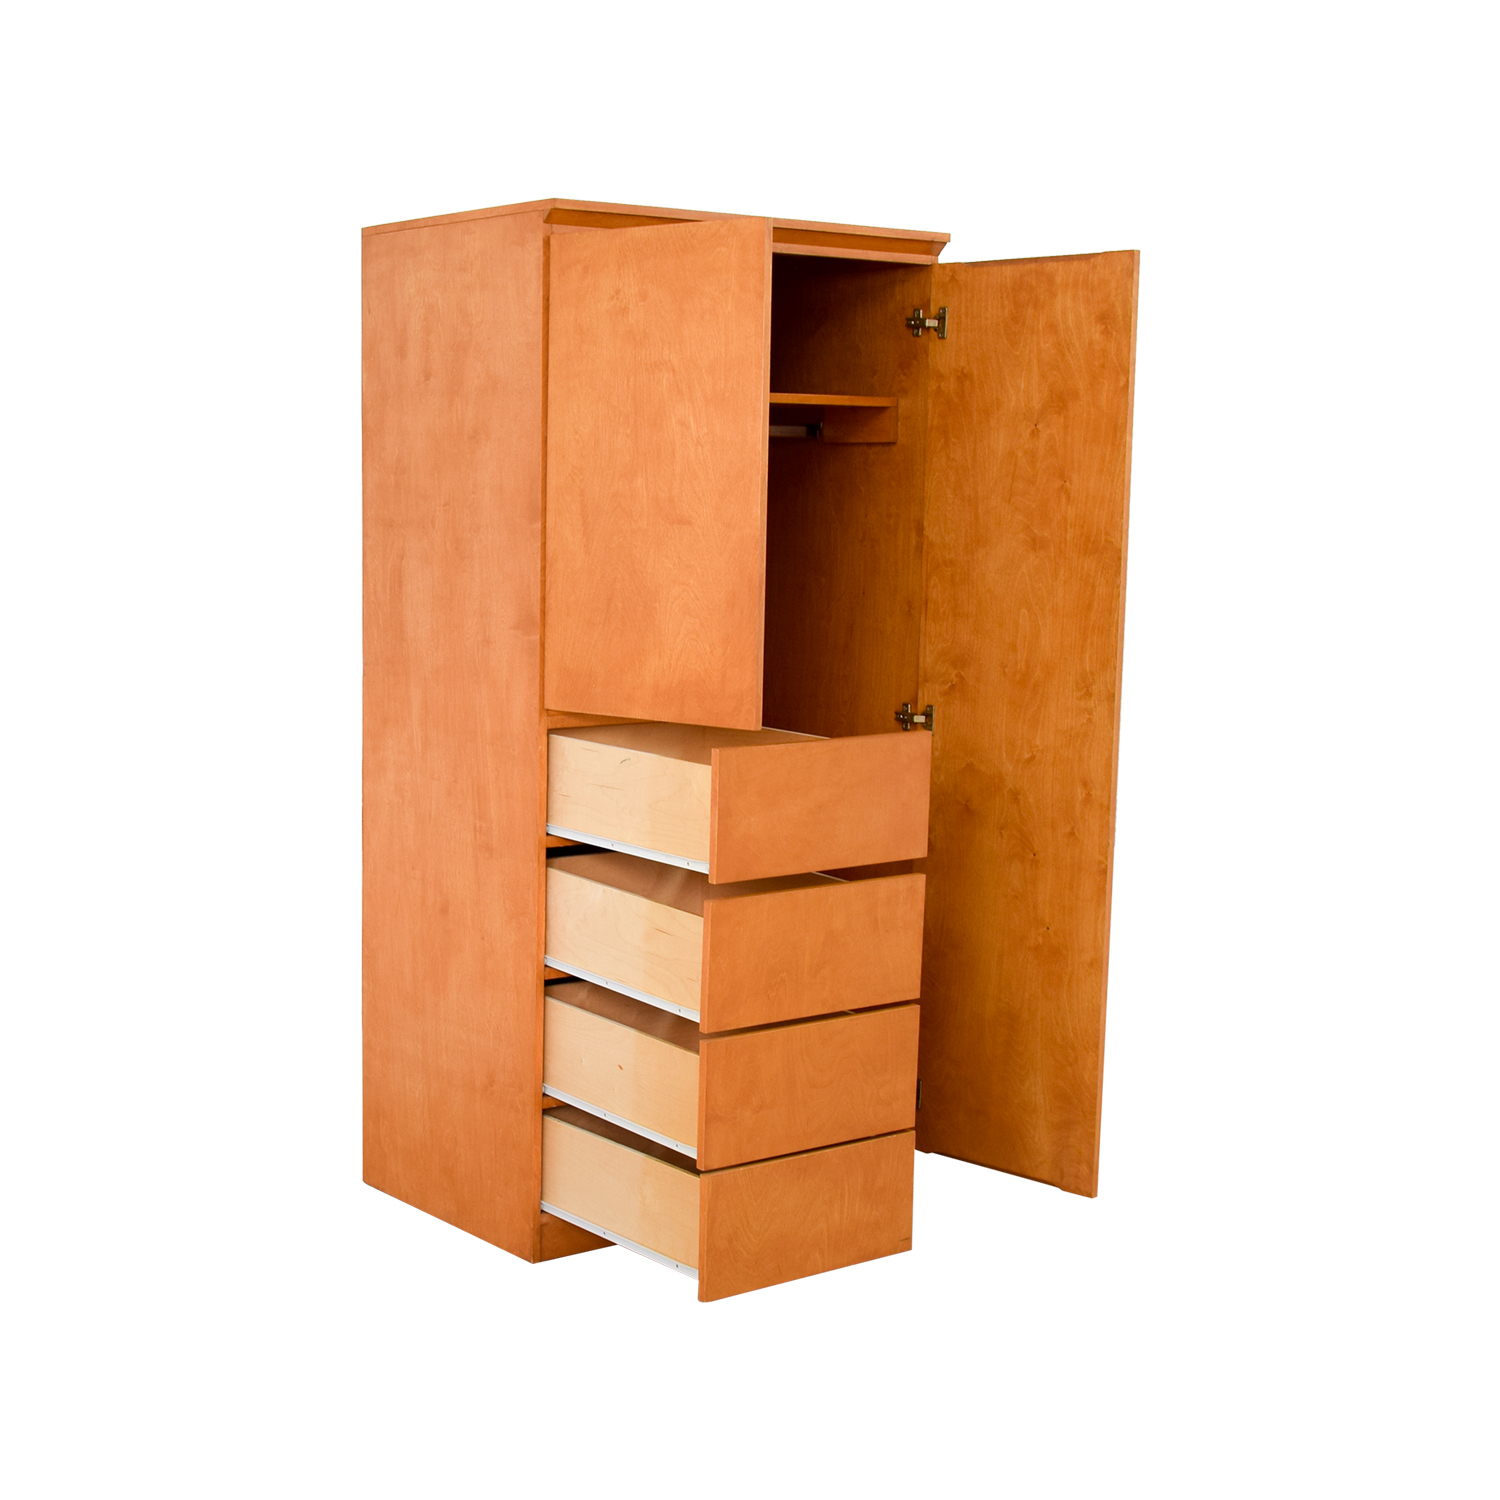 ... Buy Gothic Cabinets Solid Wood Wardrobe Gothic Cabinets Storage ...